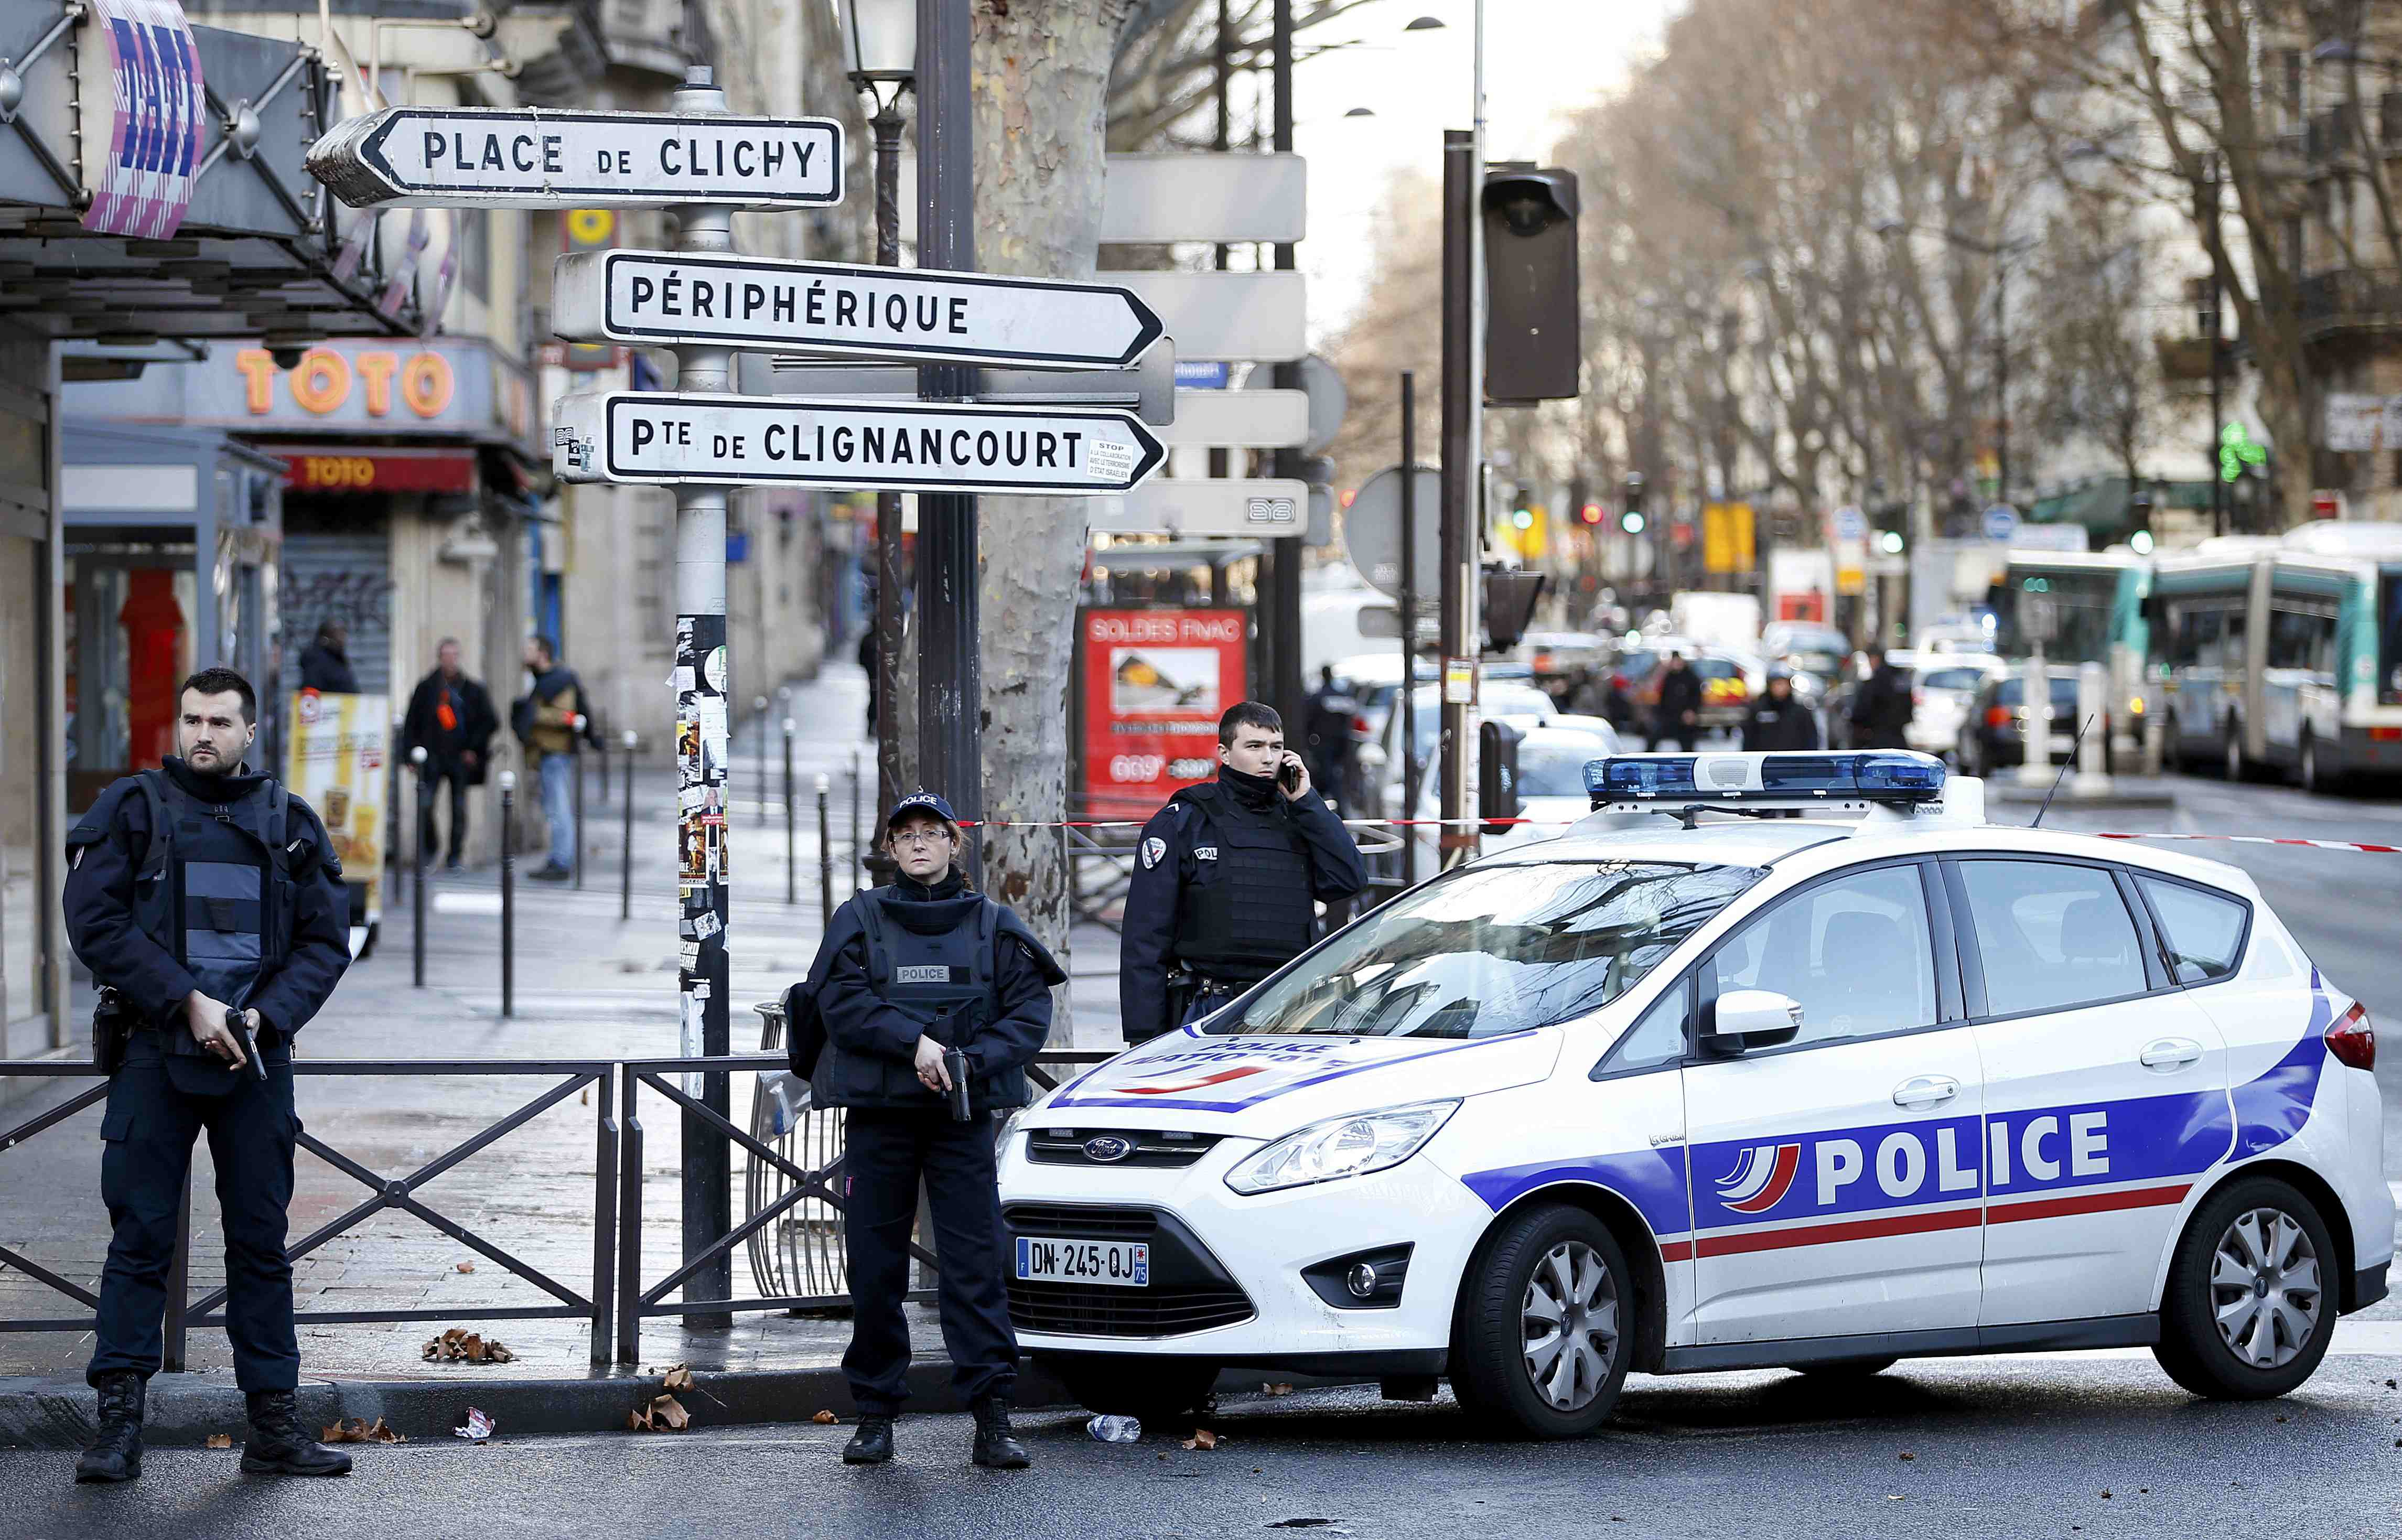 French police secure the area after a man was shot dead at a police station in the 18th district in Paris, France January 7, 2016. Photo: Reuters